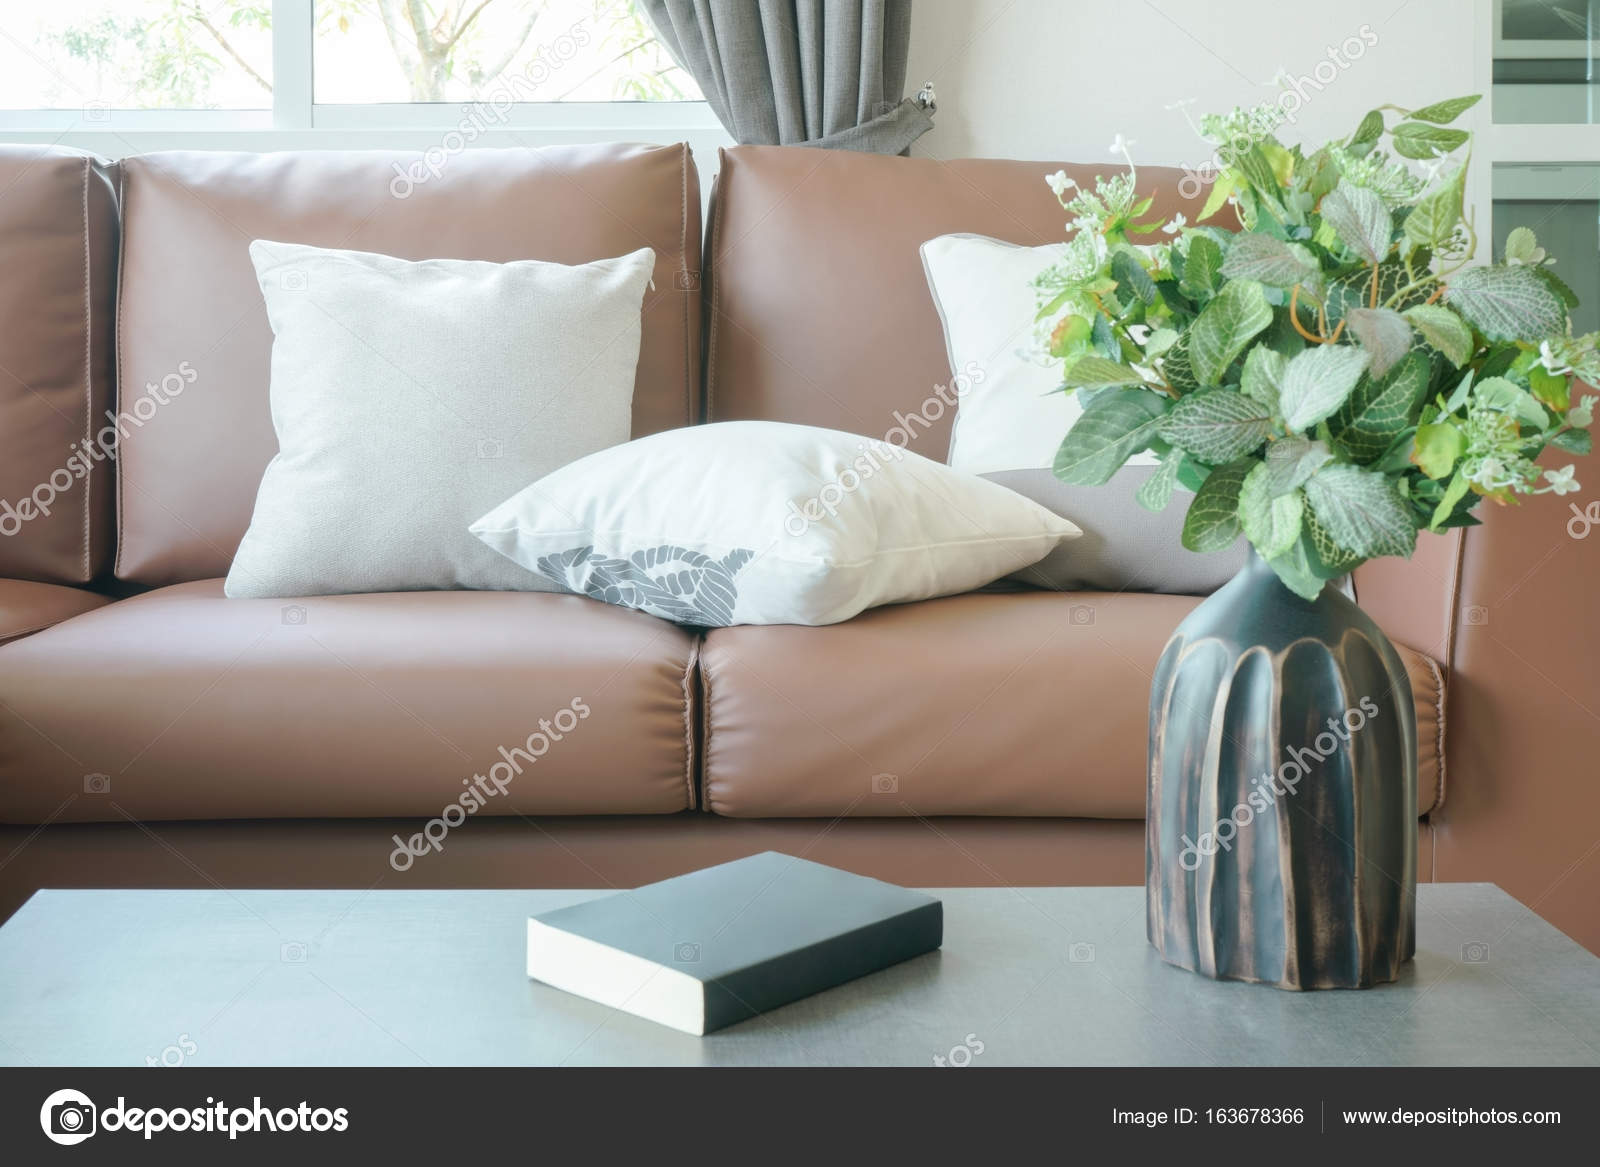 Light Brown Leather Sofa With Vase And Book On Center Table U2014 Stock Photo